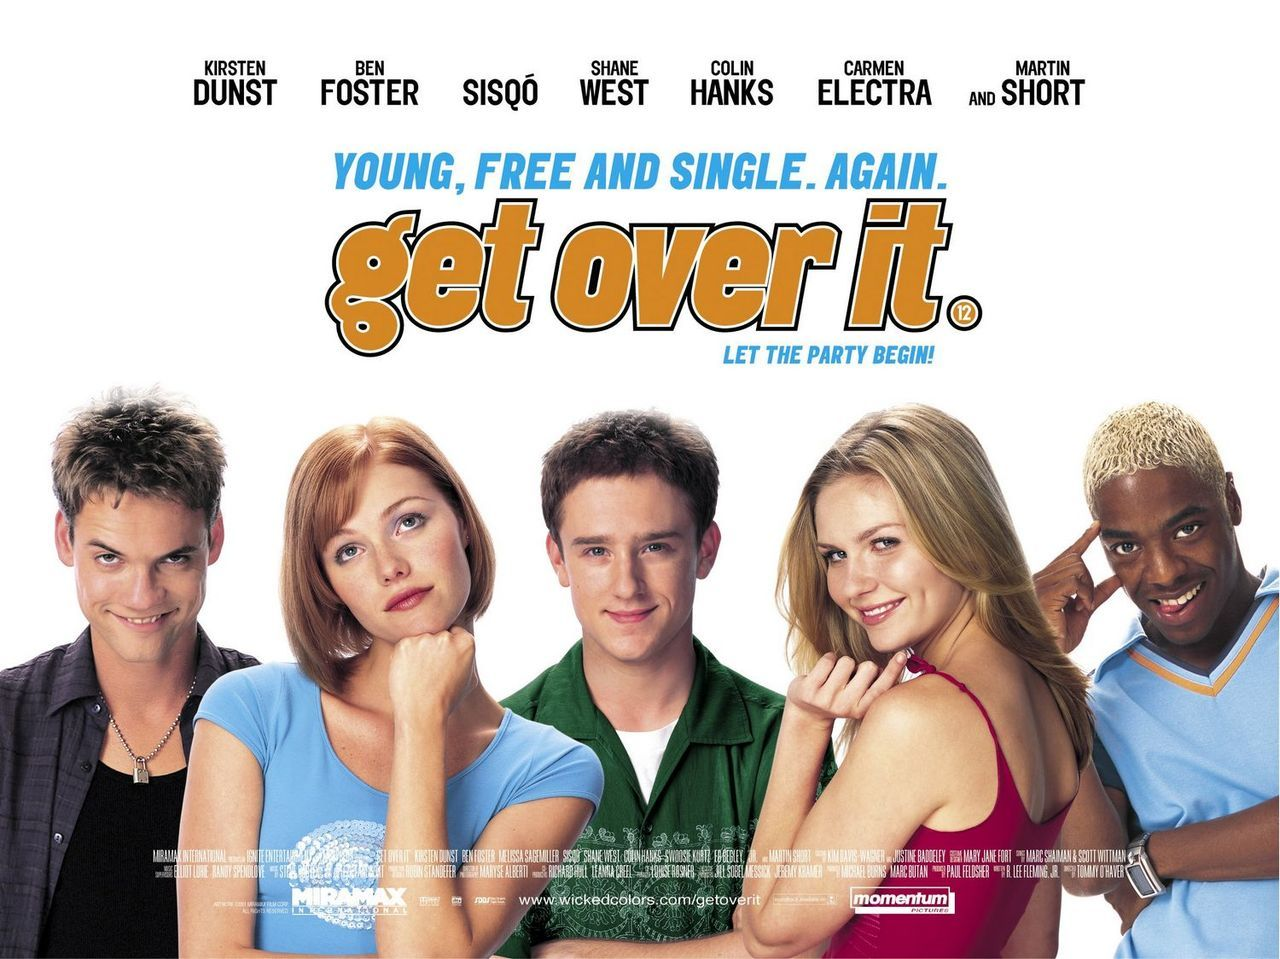 Get Over It is a 2001 American romantic comedy film about a teenage boy whose girlfriend ends their relationship. The film was directed by Tommy O'Haver. The film stars Ben Foster, Kirsten Dunst, Melissa Sagemiller, Sisqó, Colin Hanks, Shane West, and Martin Short